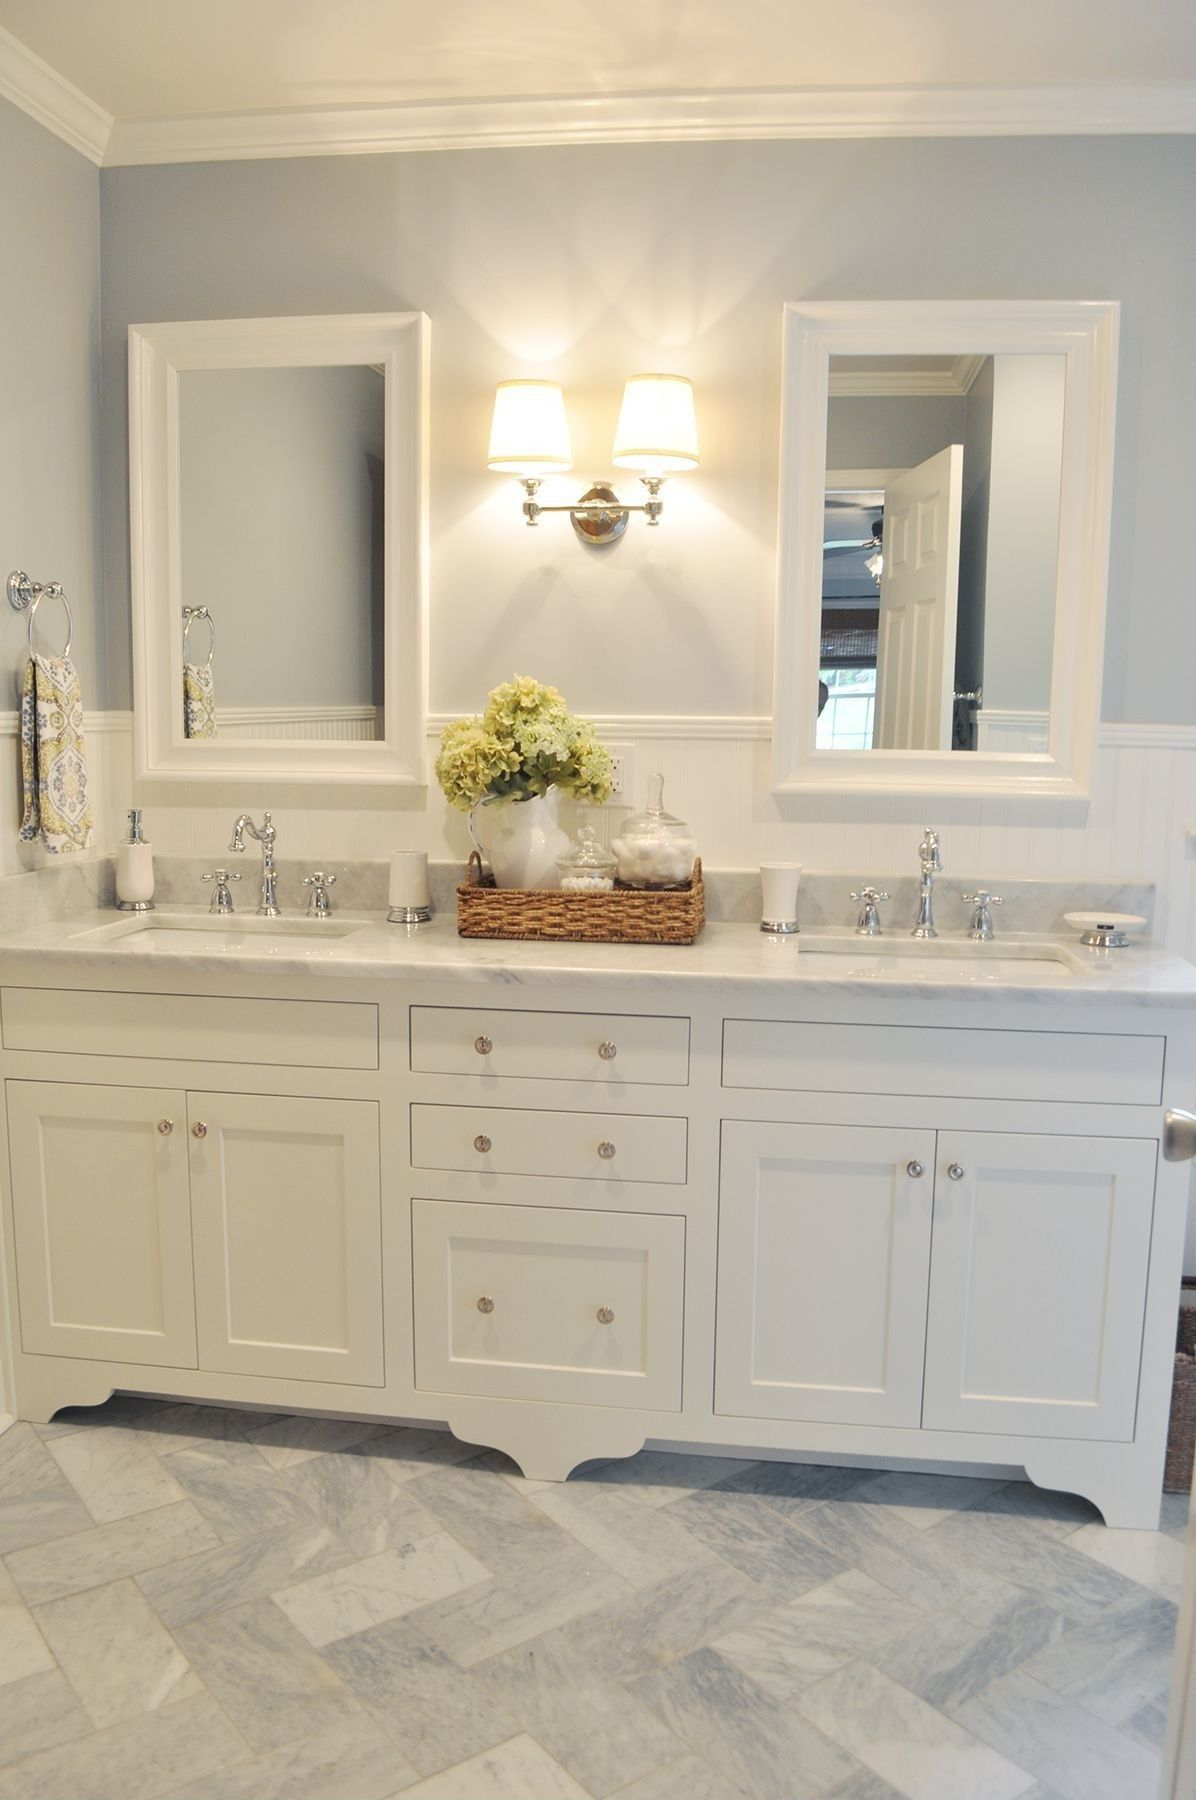 Choosing a New Bathroom Faucet | Powder room, Tap and Bath